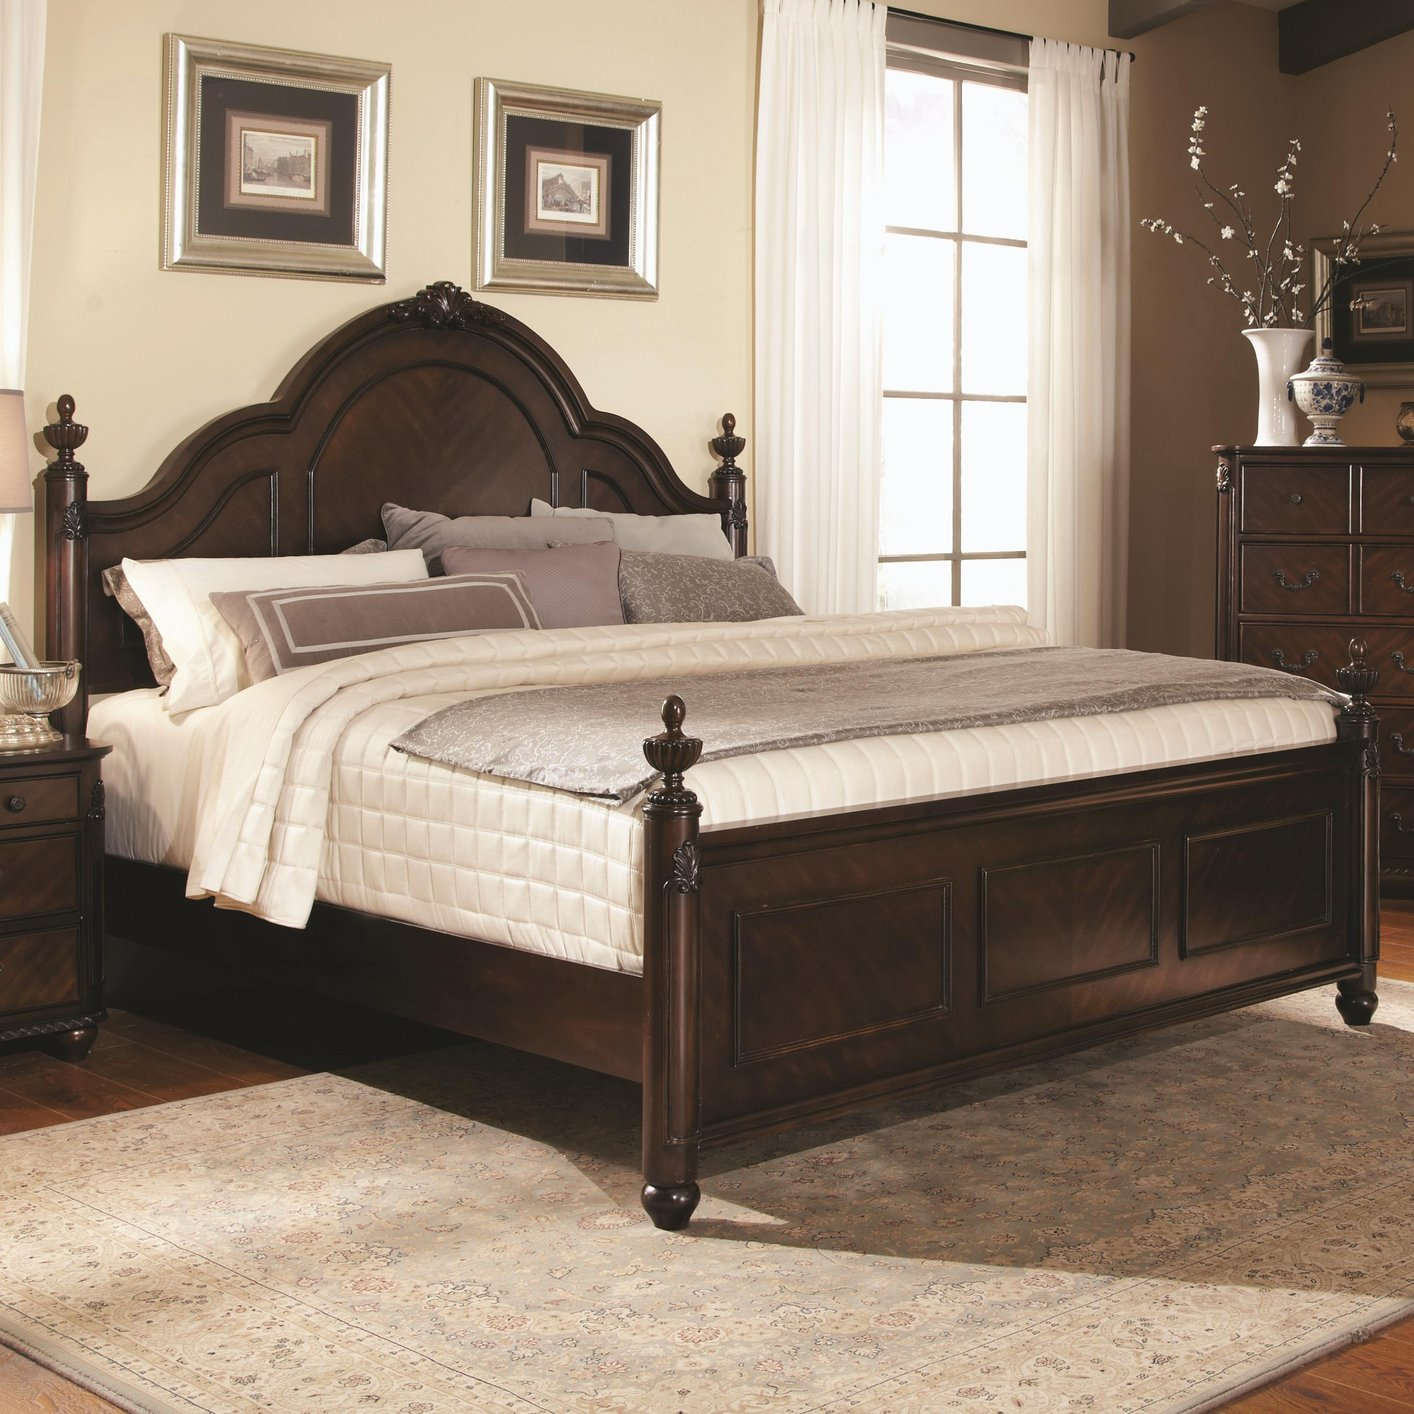 Coaster 203221ke brown eastern king size wood bed steal for Bedroom furniture 90036